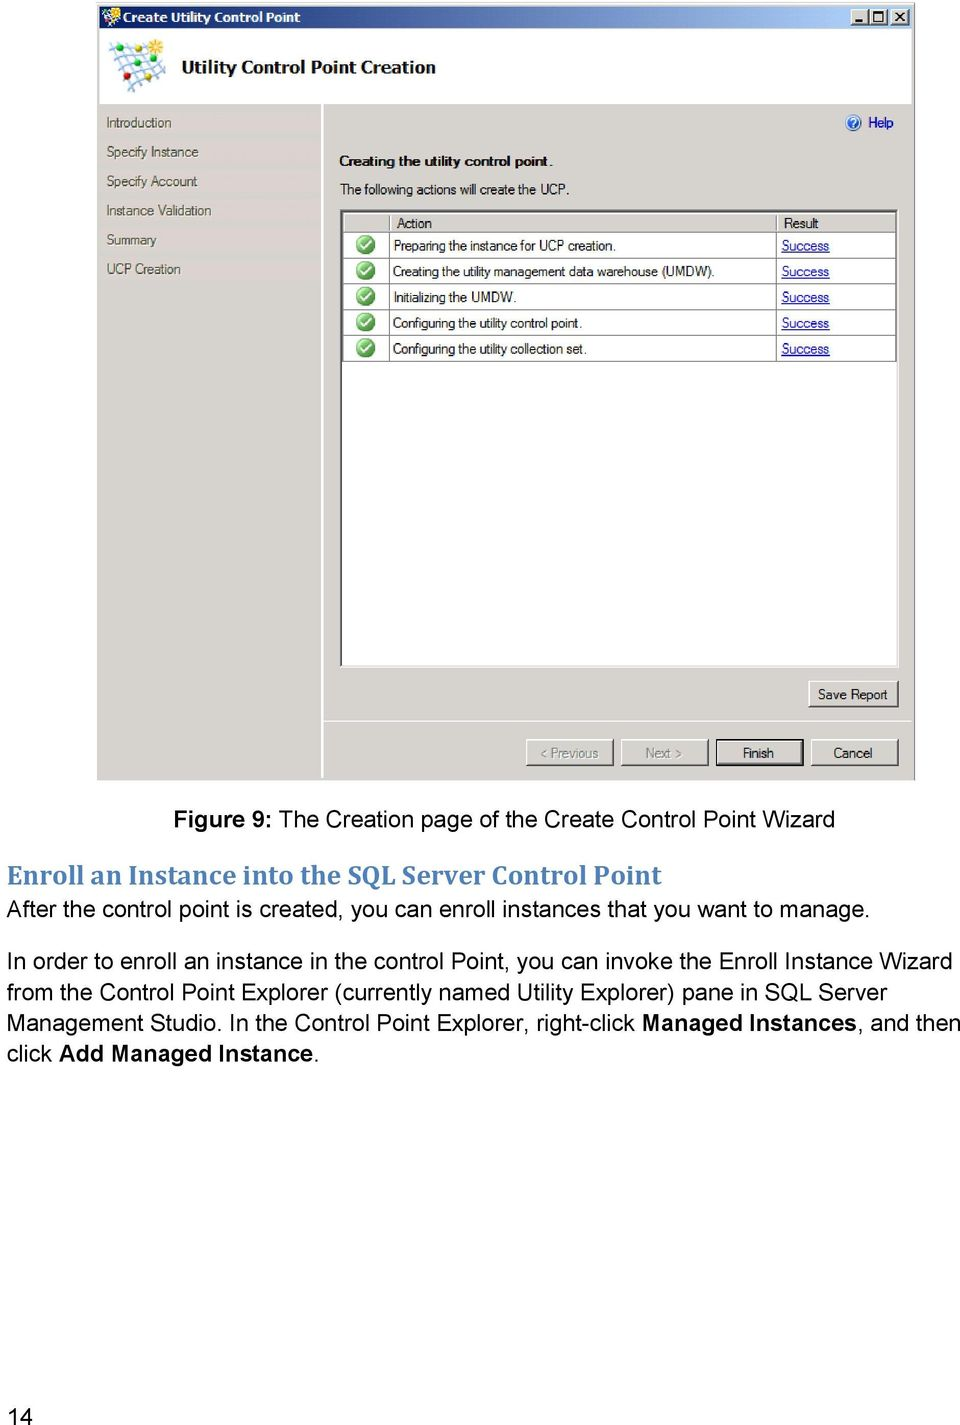 In order to enroll an instance in the control Point, you can invoke the Enroll Instance Wizard from the Control Point